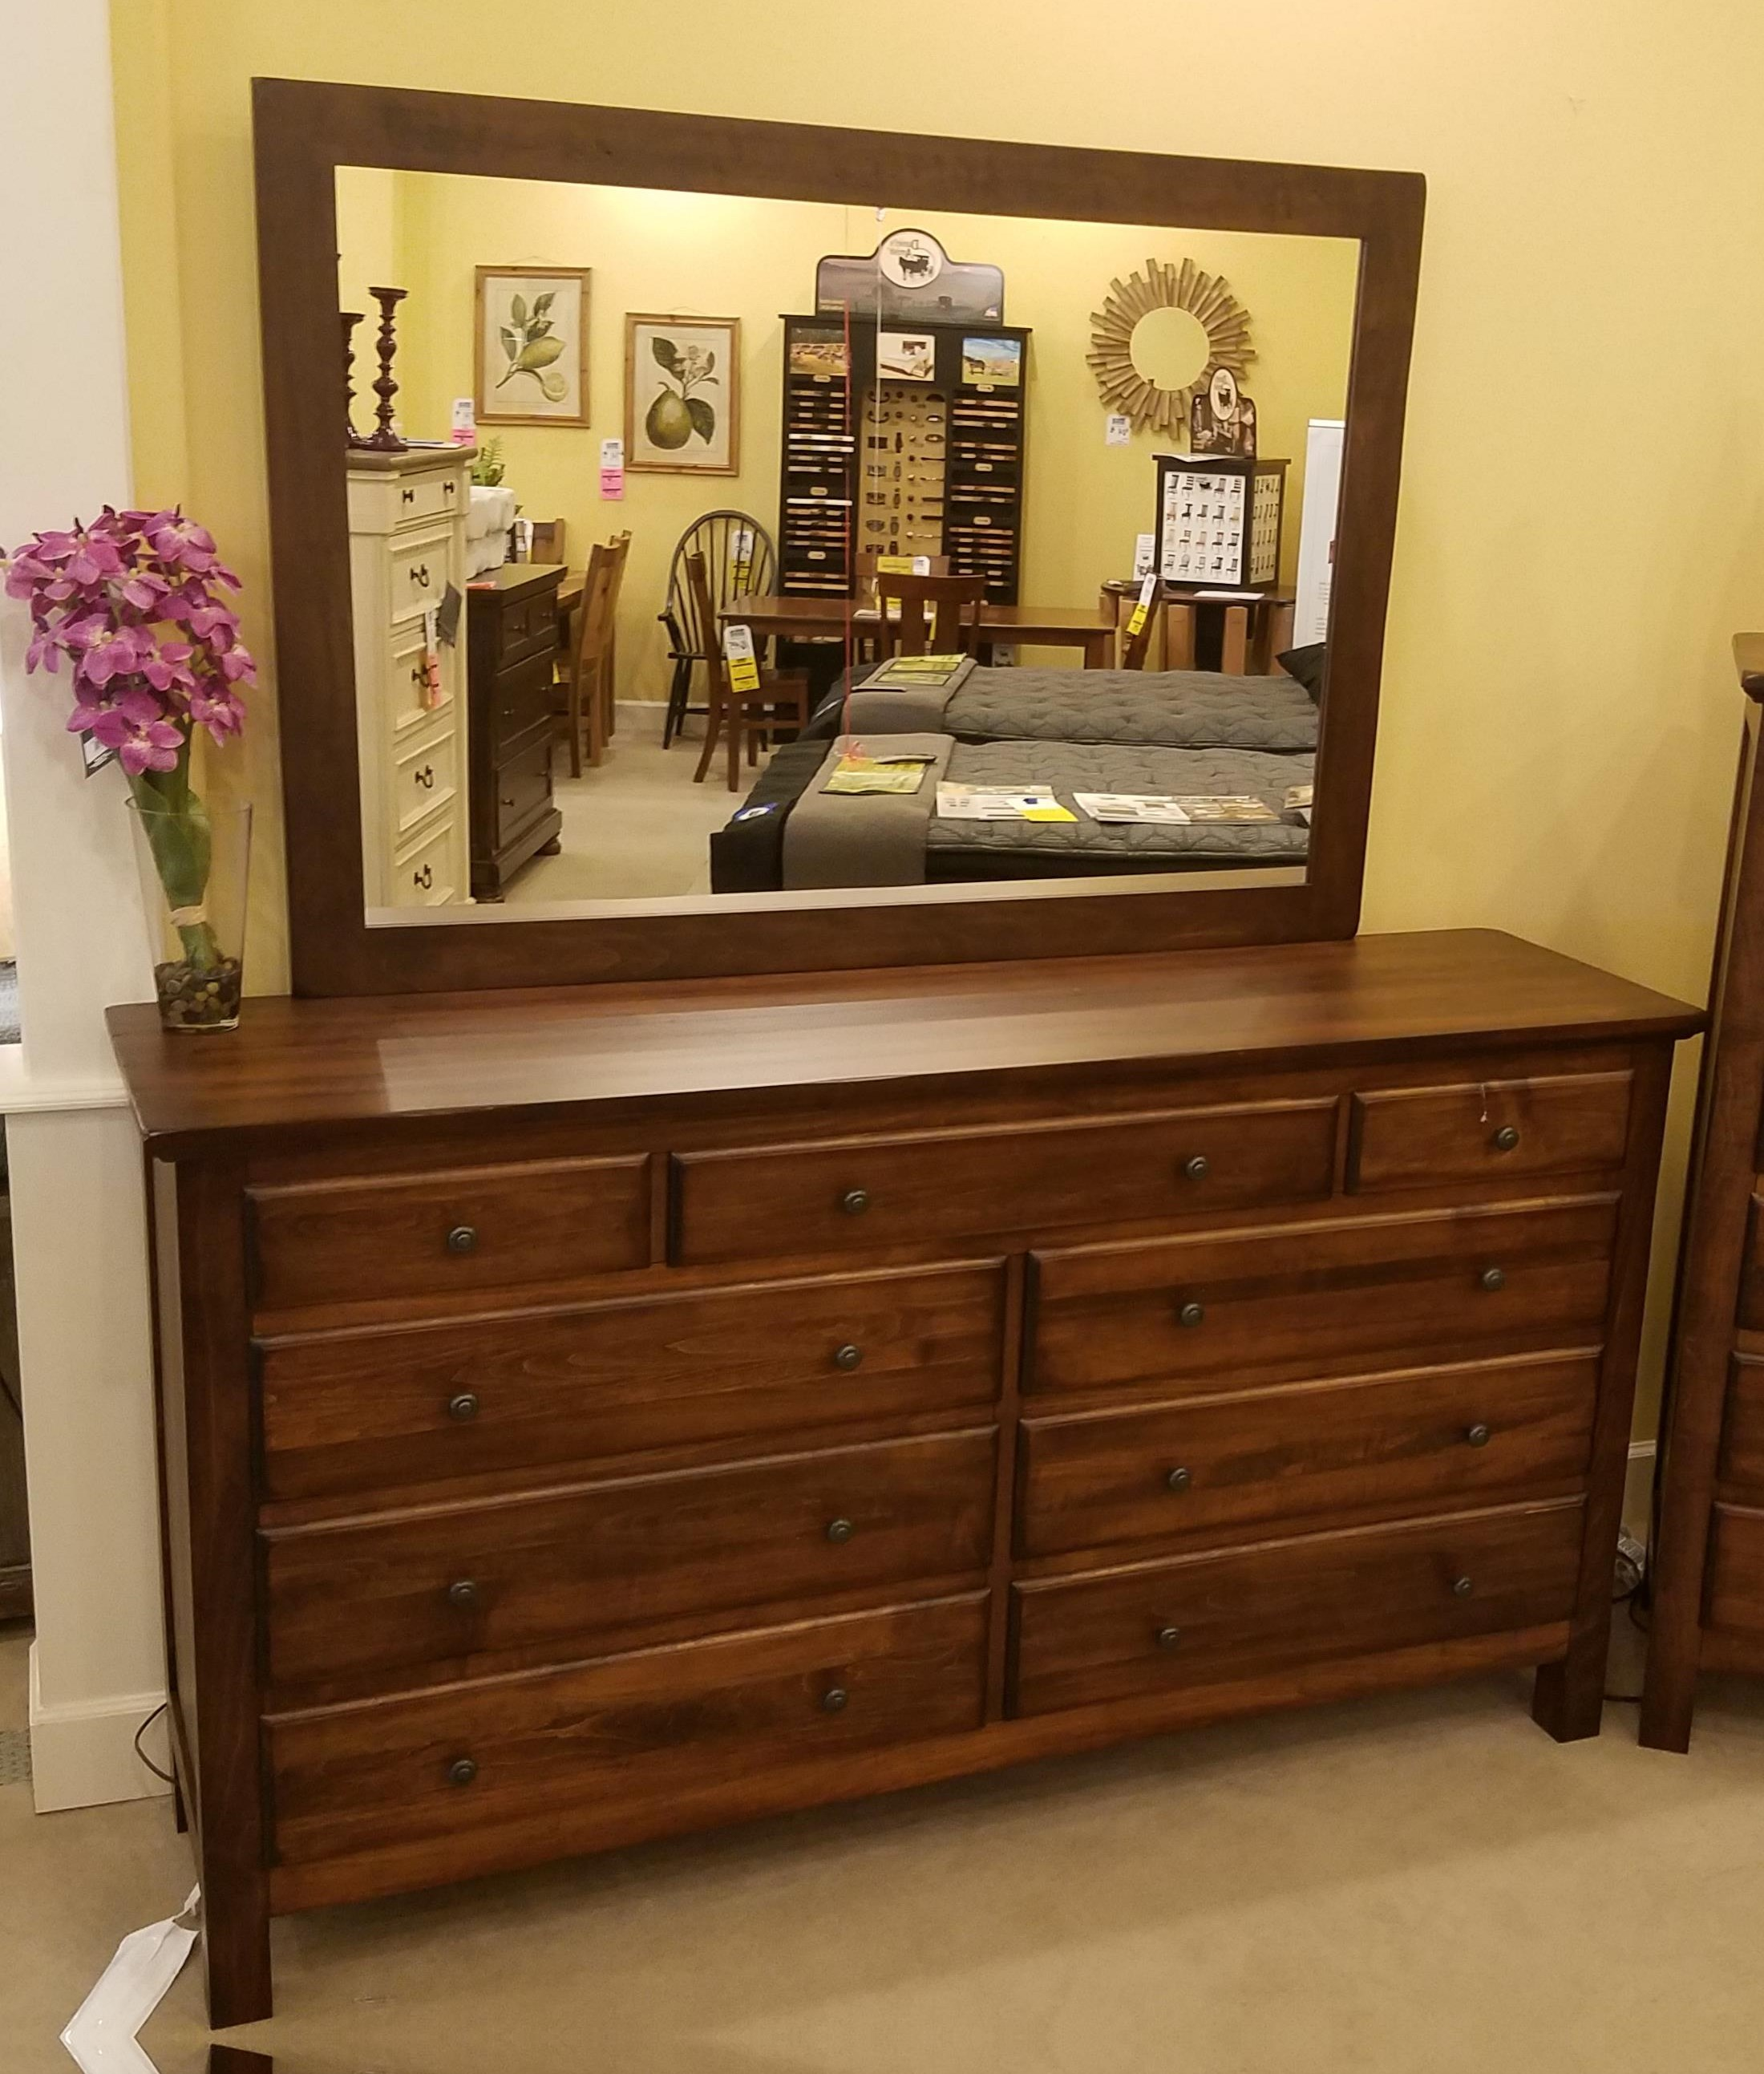 Lewiston Nine Drawer Dresser and Mirror by Daniel's Amish at Rife's Home Furniture